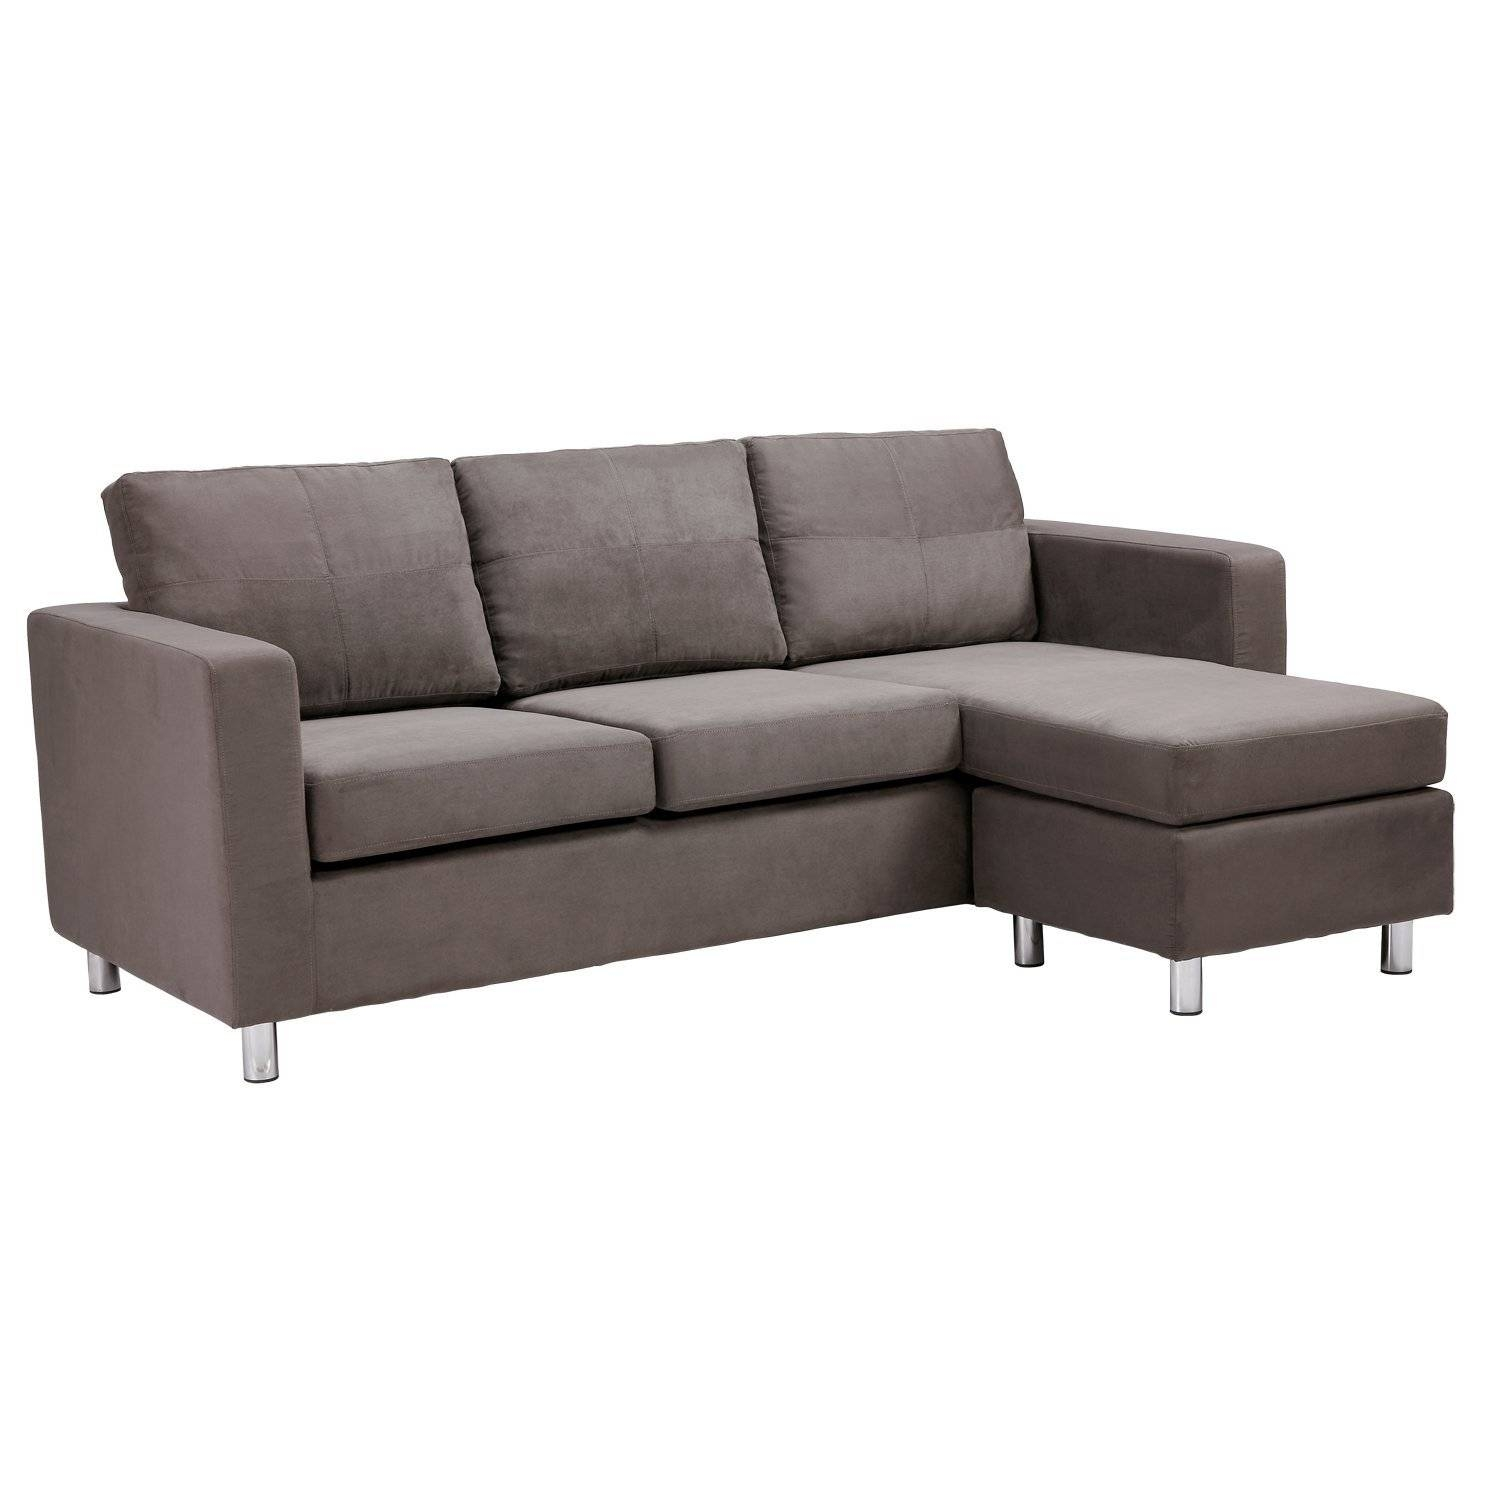 Small Space Sofas Top 10 Contemporary Sofas For Small Spaces inside Modern Sectional Sofas For Small Spaces (Image 22 of 25)